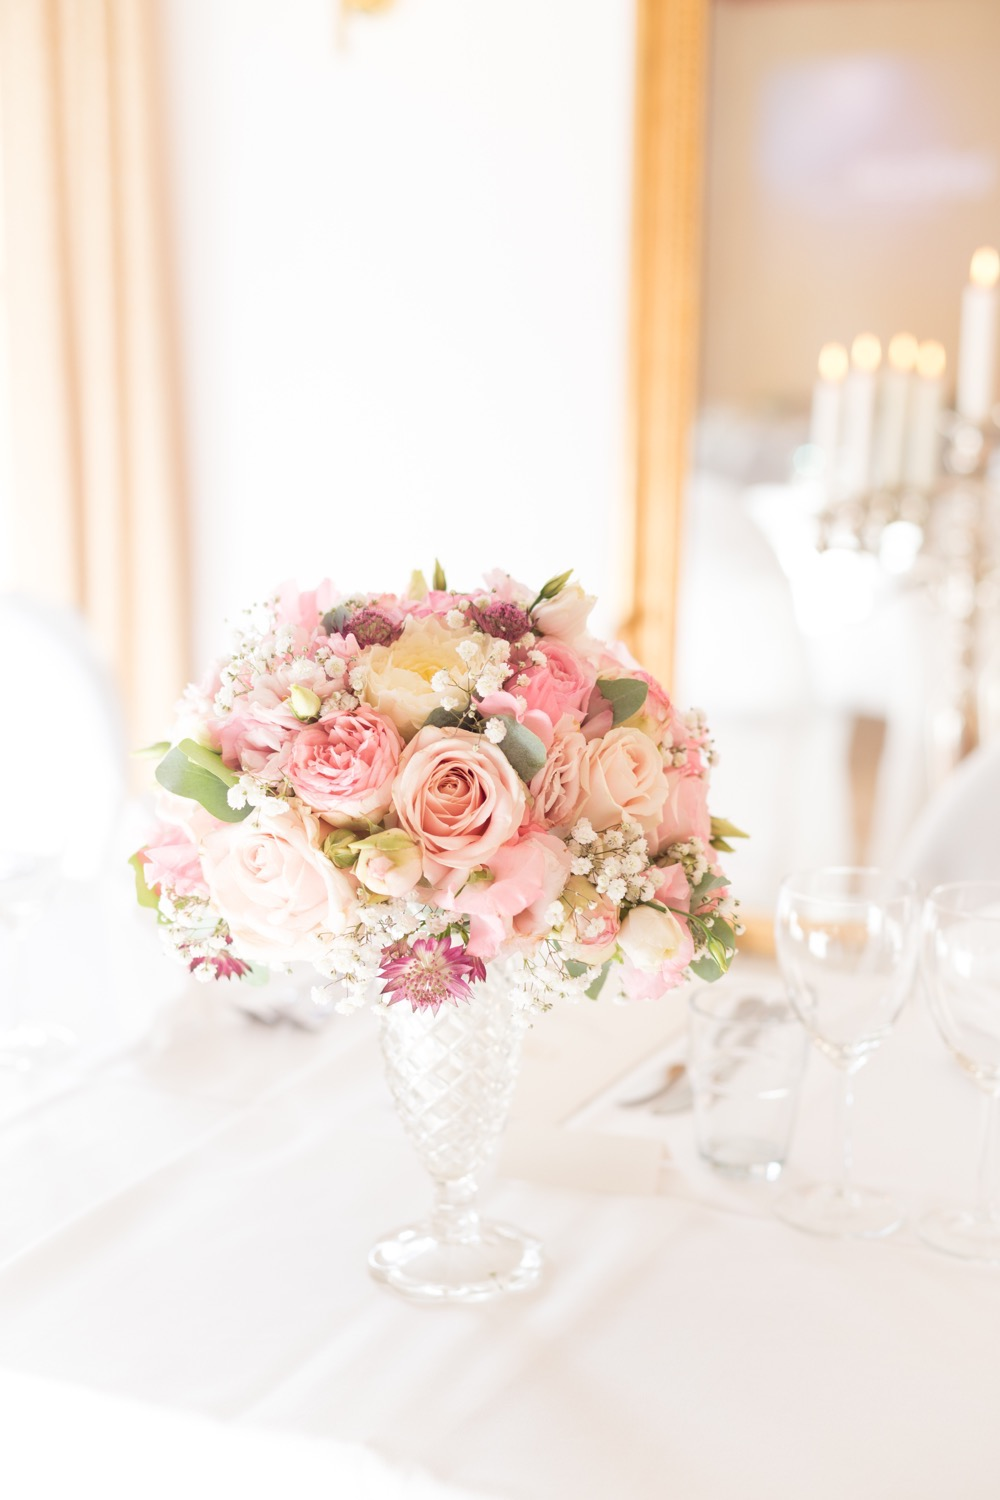 elegant swedish wedding by emelie petre87